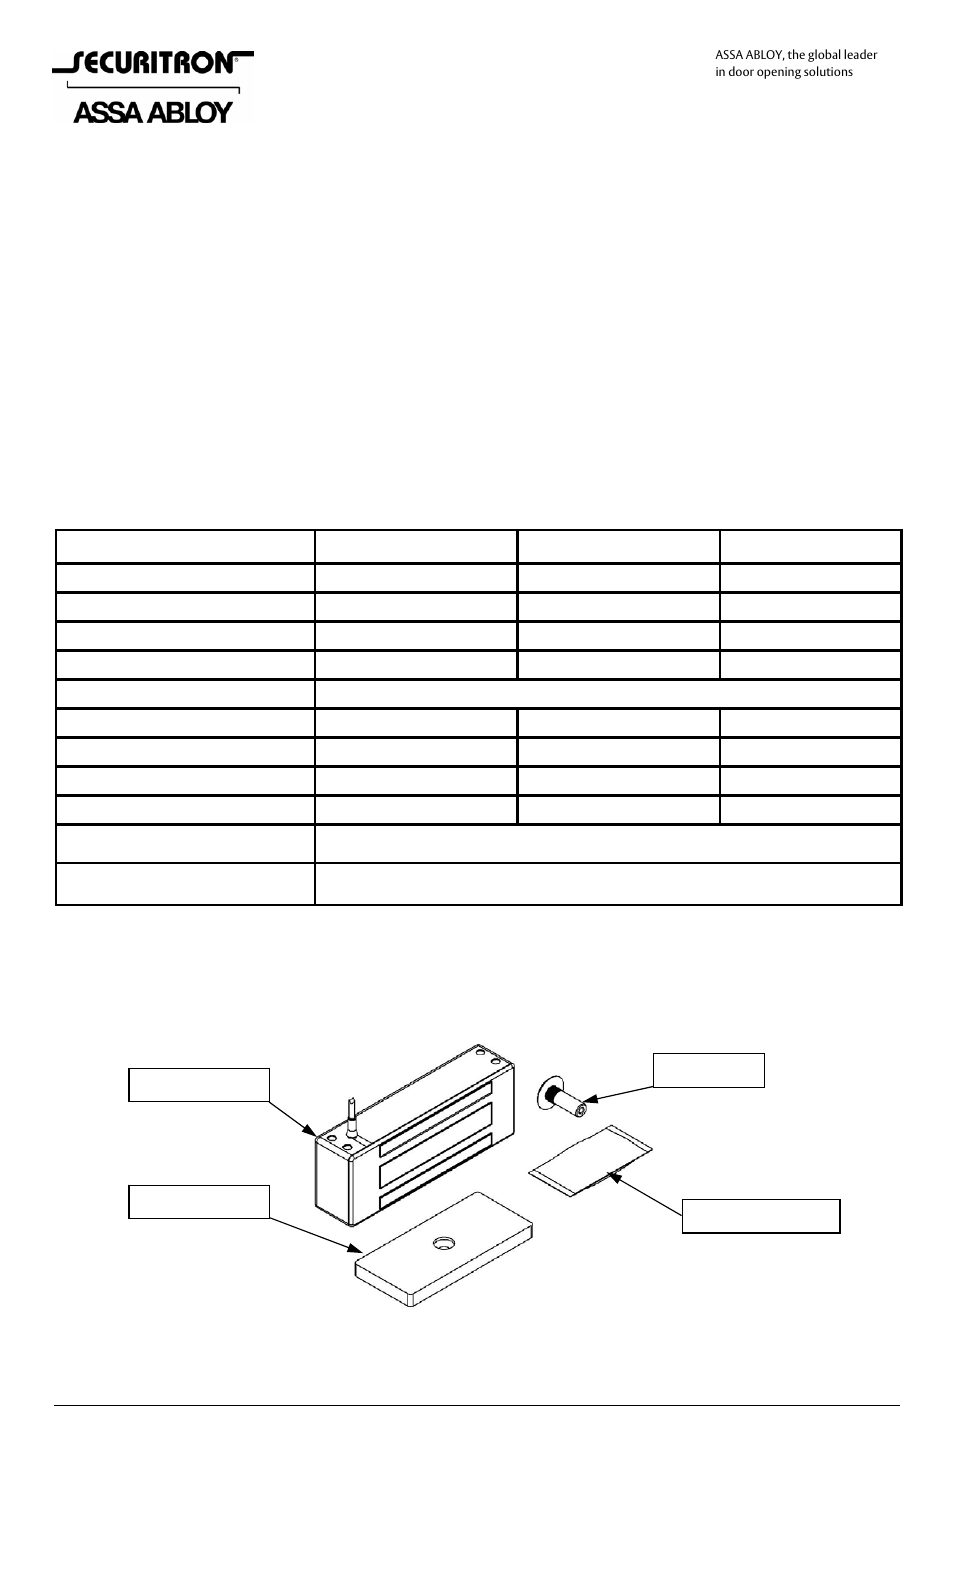 Securitron M82B User Manual | 16 pages | Also for: M62, M32 on m32 maglock, 600-pound maglock, double maglock, for sliding door maglock, wiring a maglock, side mount maglock,